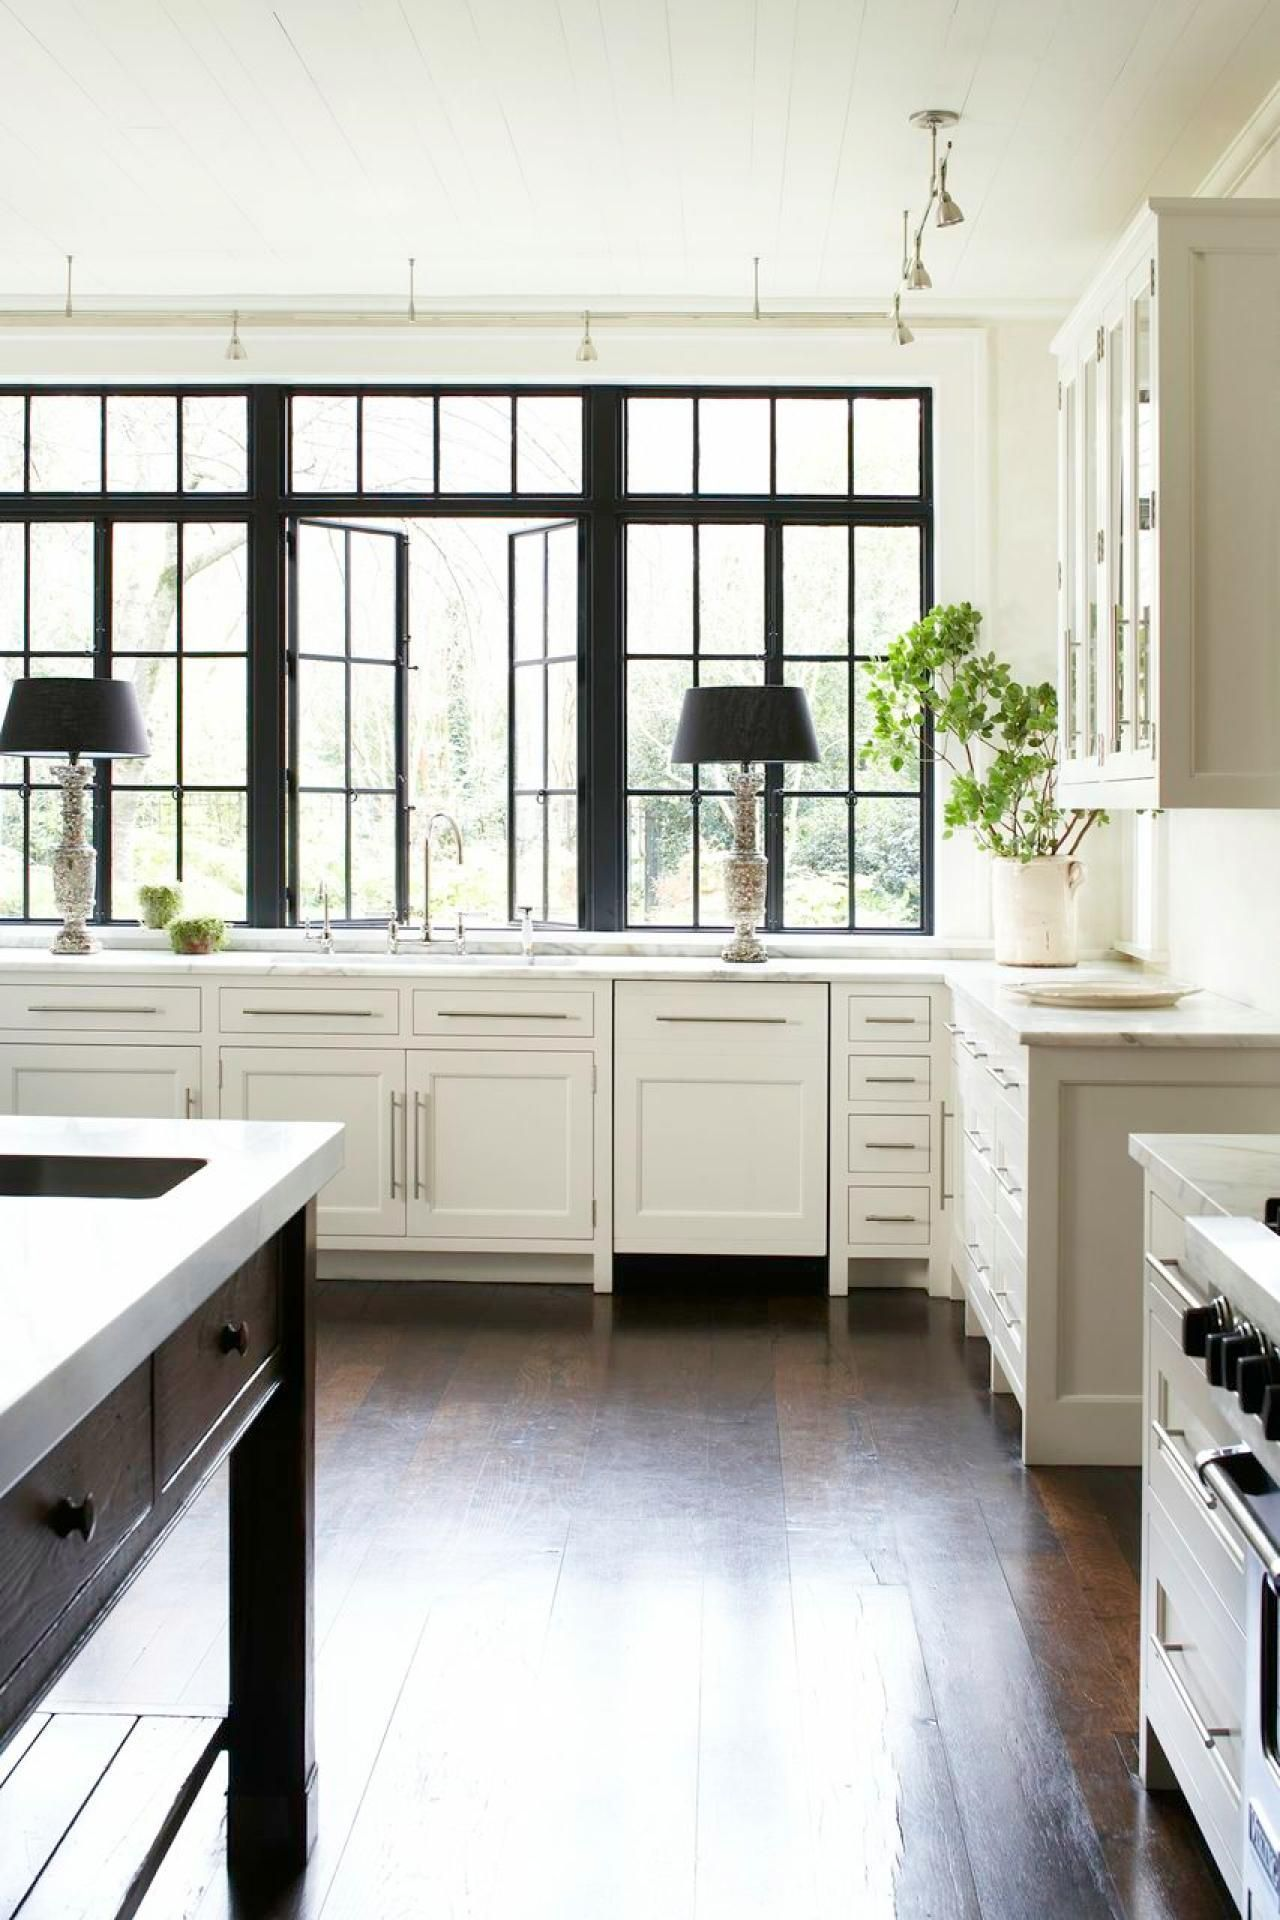 Lamps on Kitchen Counters